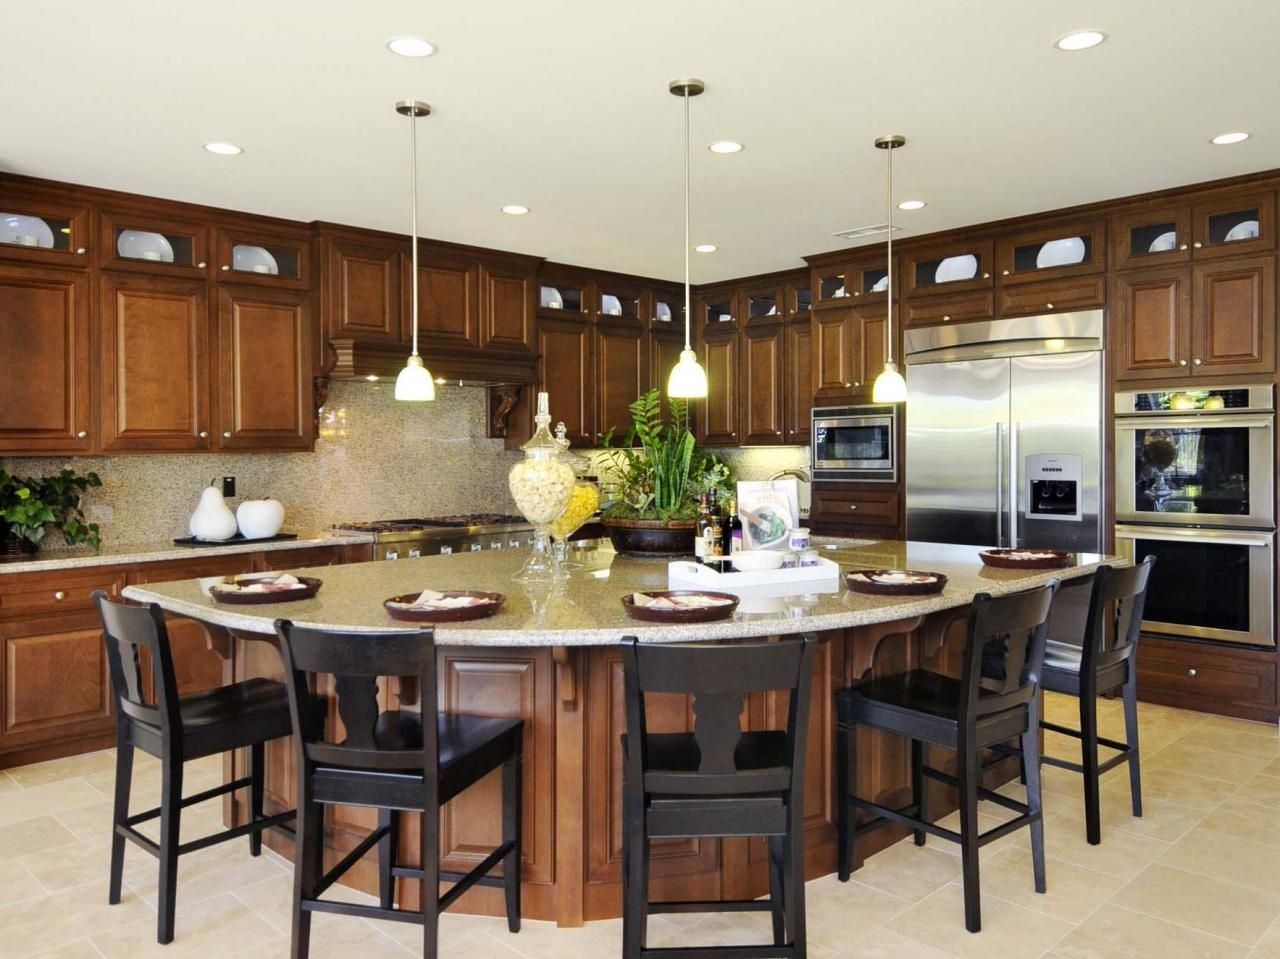 Kitchen Islands With Stove Top And Seating Google Search Kitchen Island Designs With Seating Kitchen Island With Seating For 6 Kitchen Island With Stove